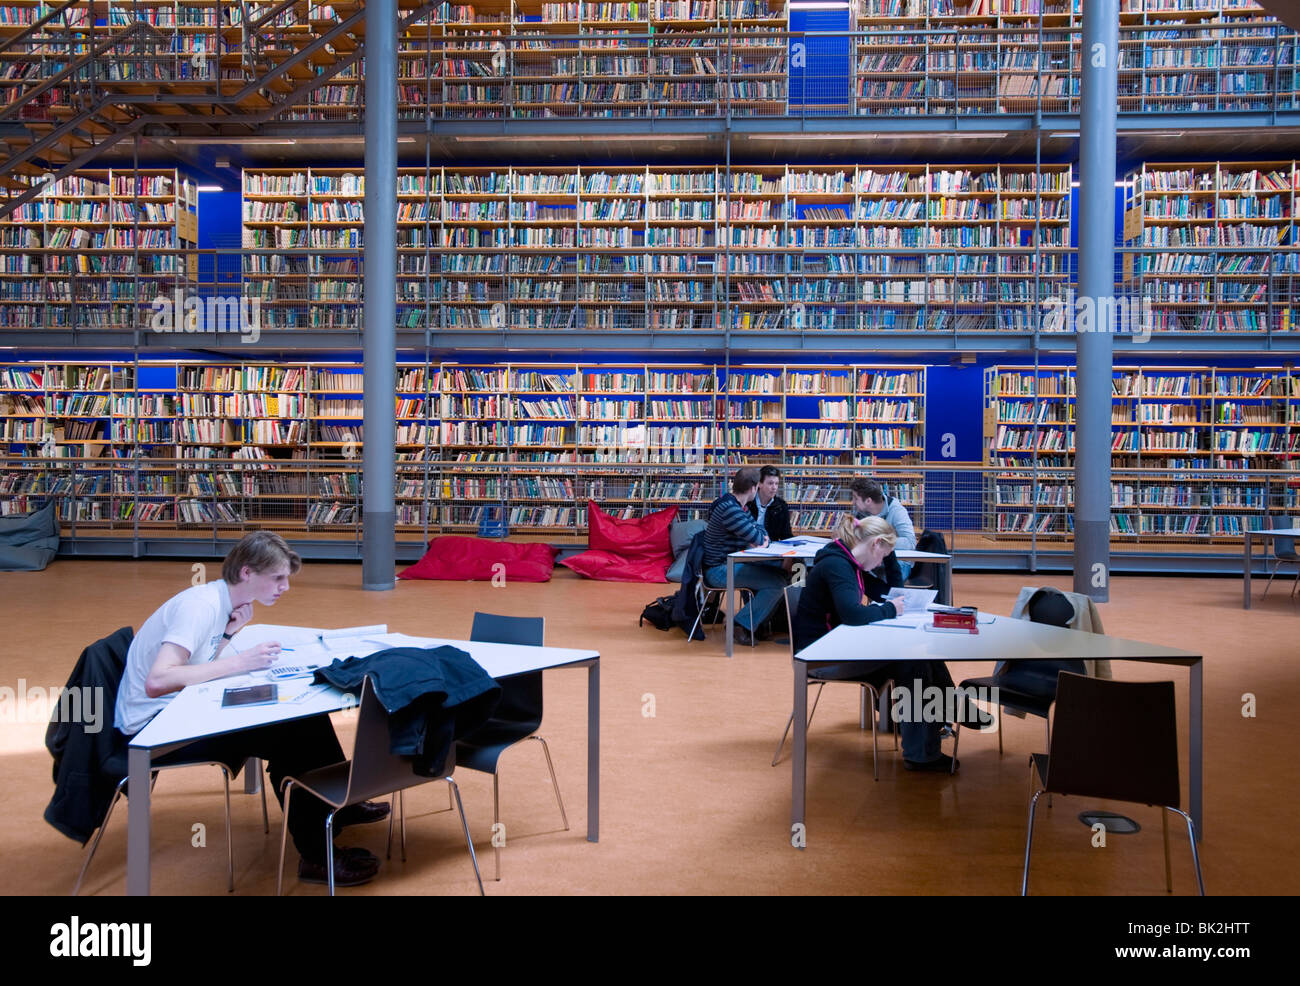 Modern interior of Delft Technical University Library in Delft The Netherlands, Architect Mecanoo - Stock Image